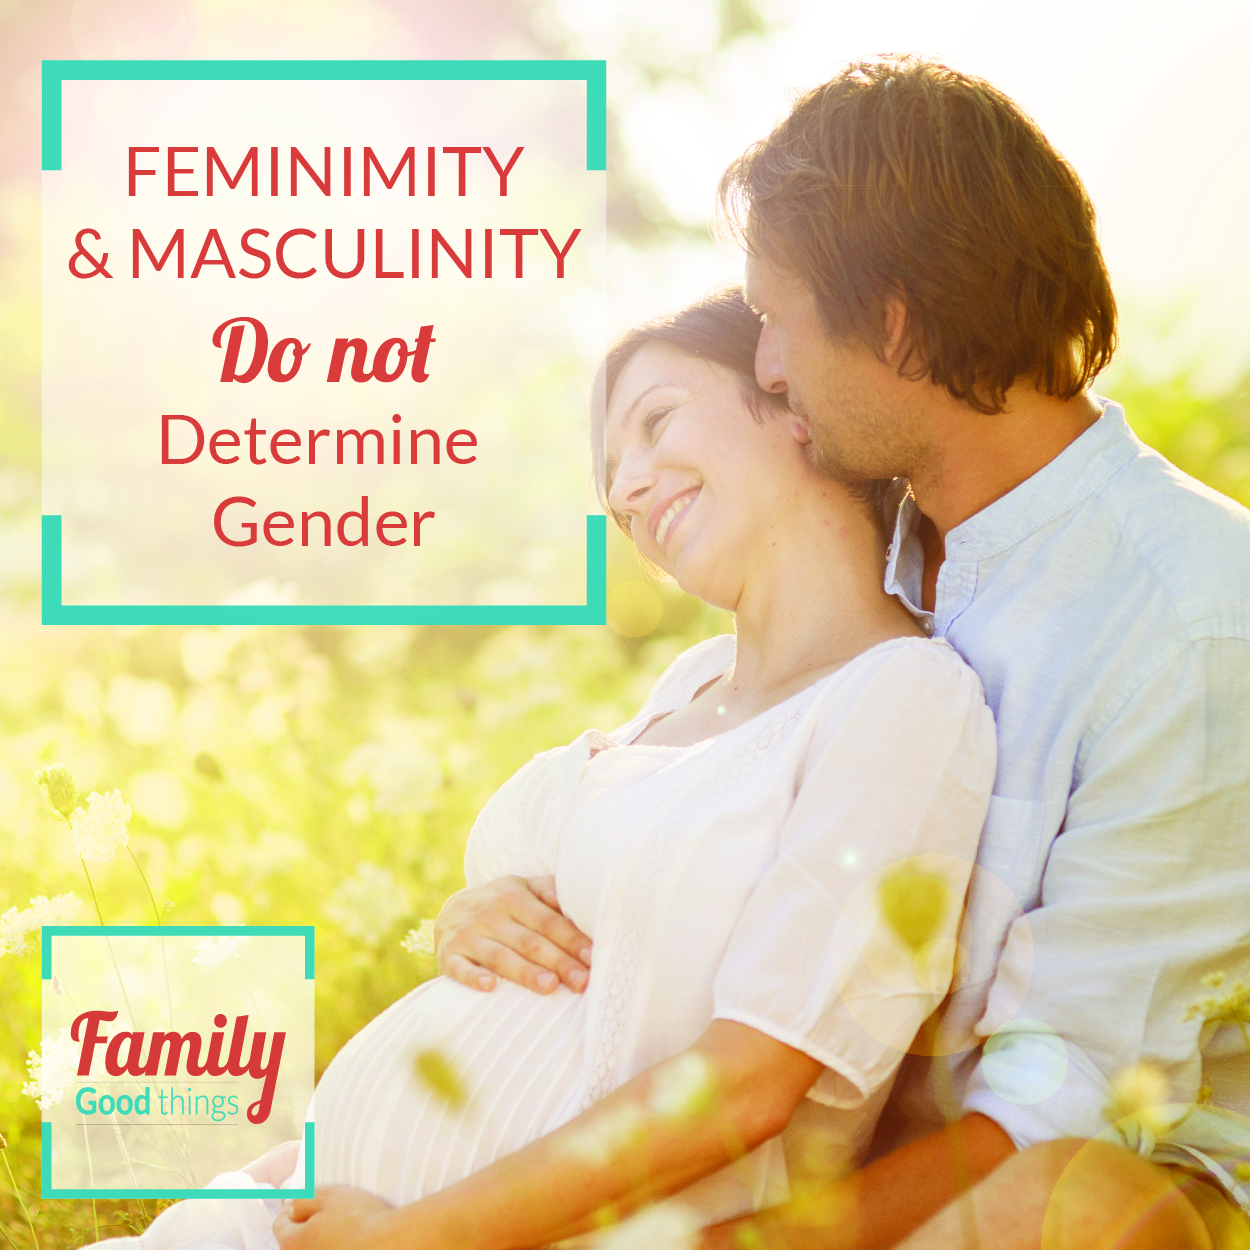 Podcast 3: Femininity and Masculinity and Emotion Do Not Determine Gender